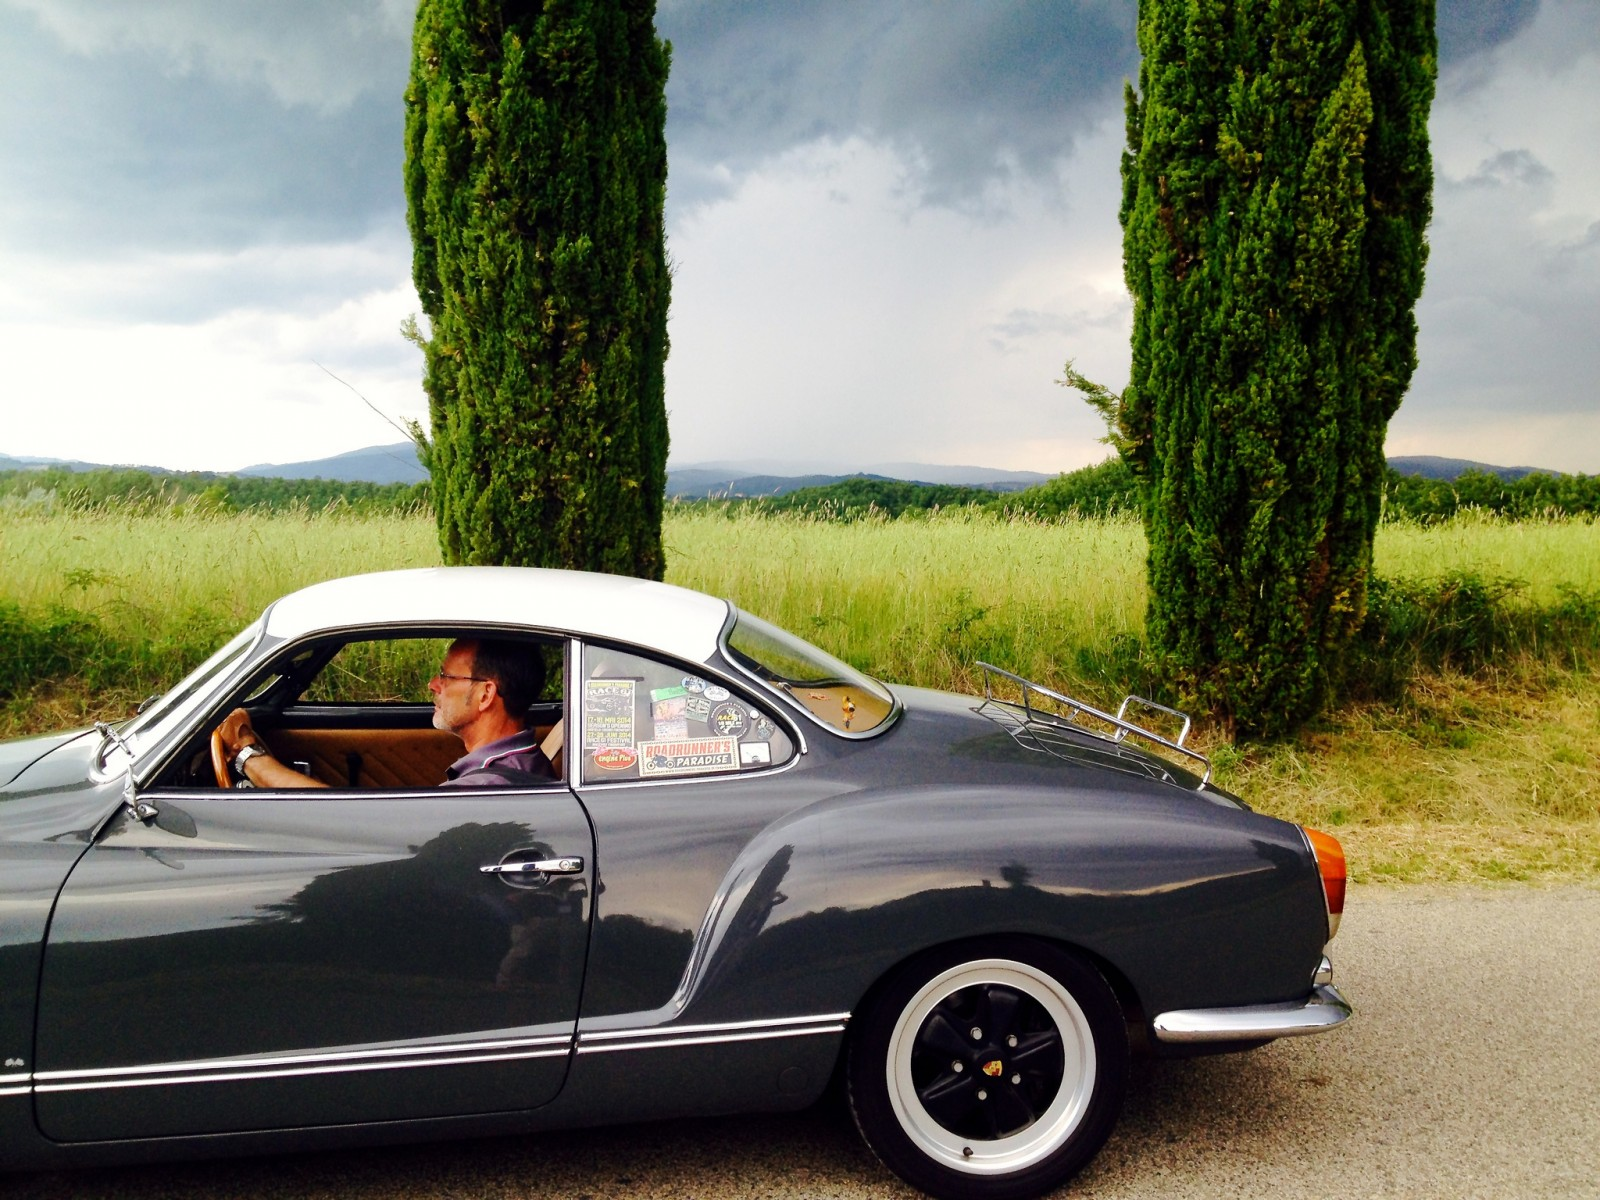 Tuscany by car [Photo Credits: vosta]